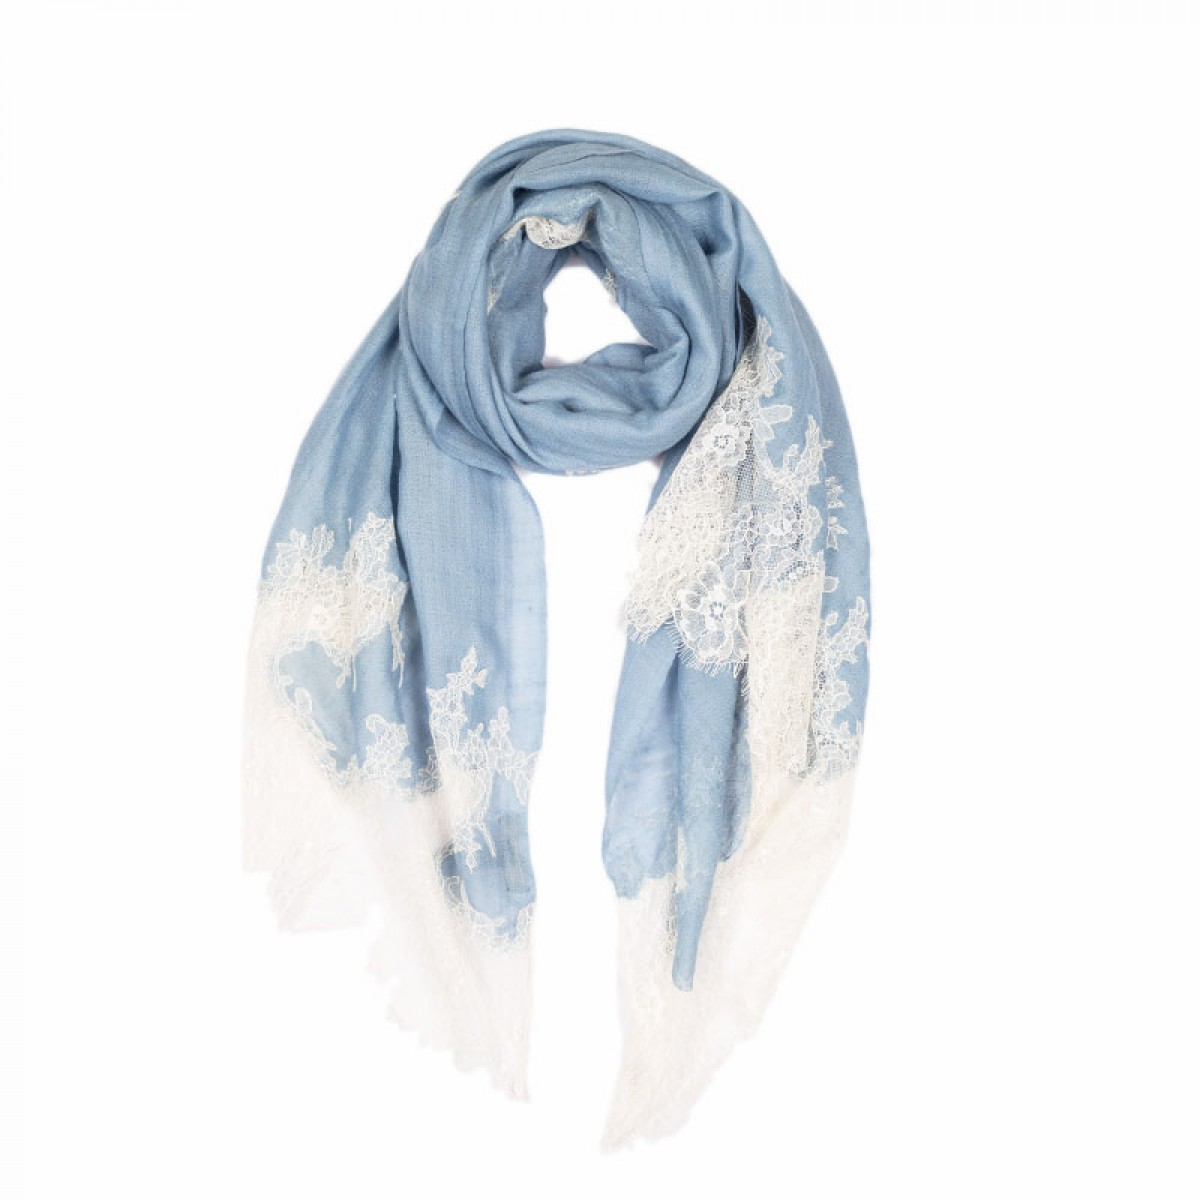 Lace Twill Pashmina Scarf Stripes Across - Serenity